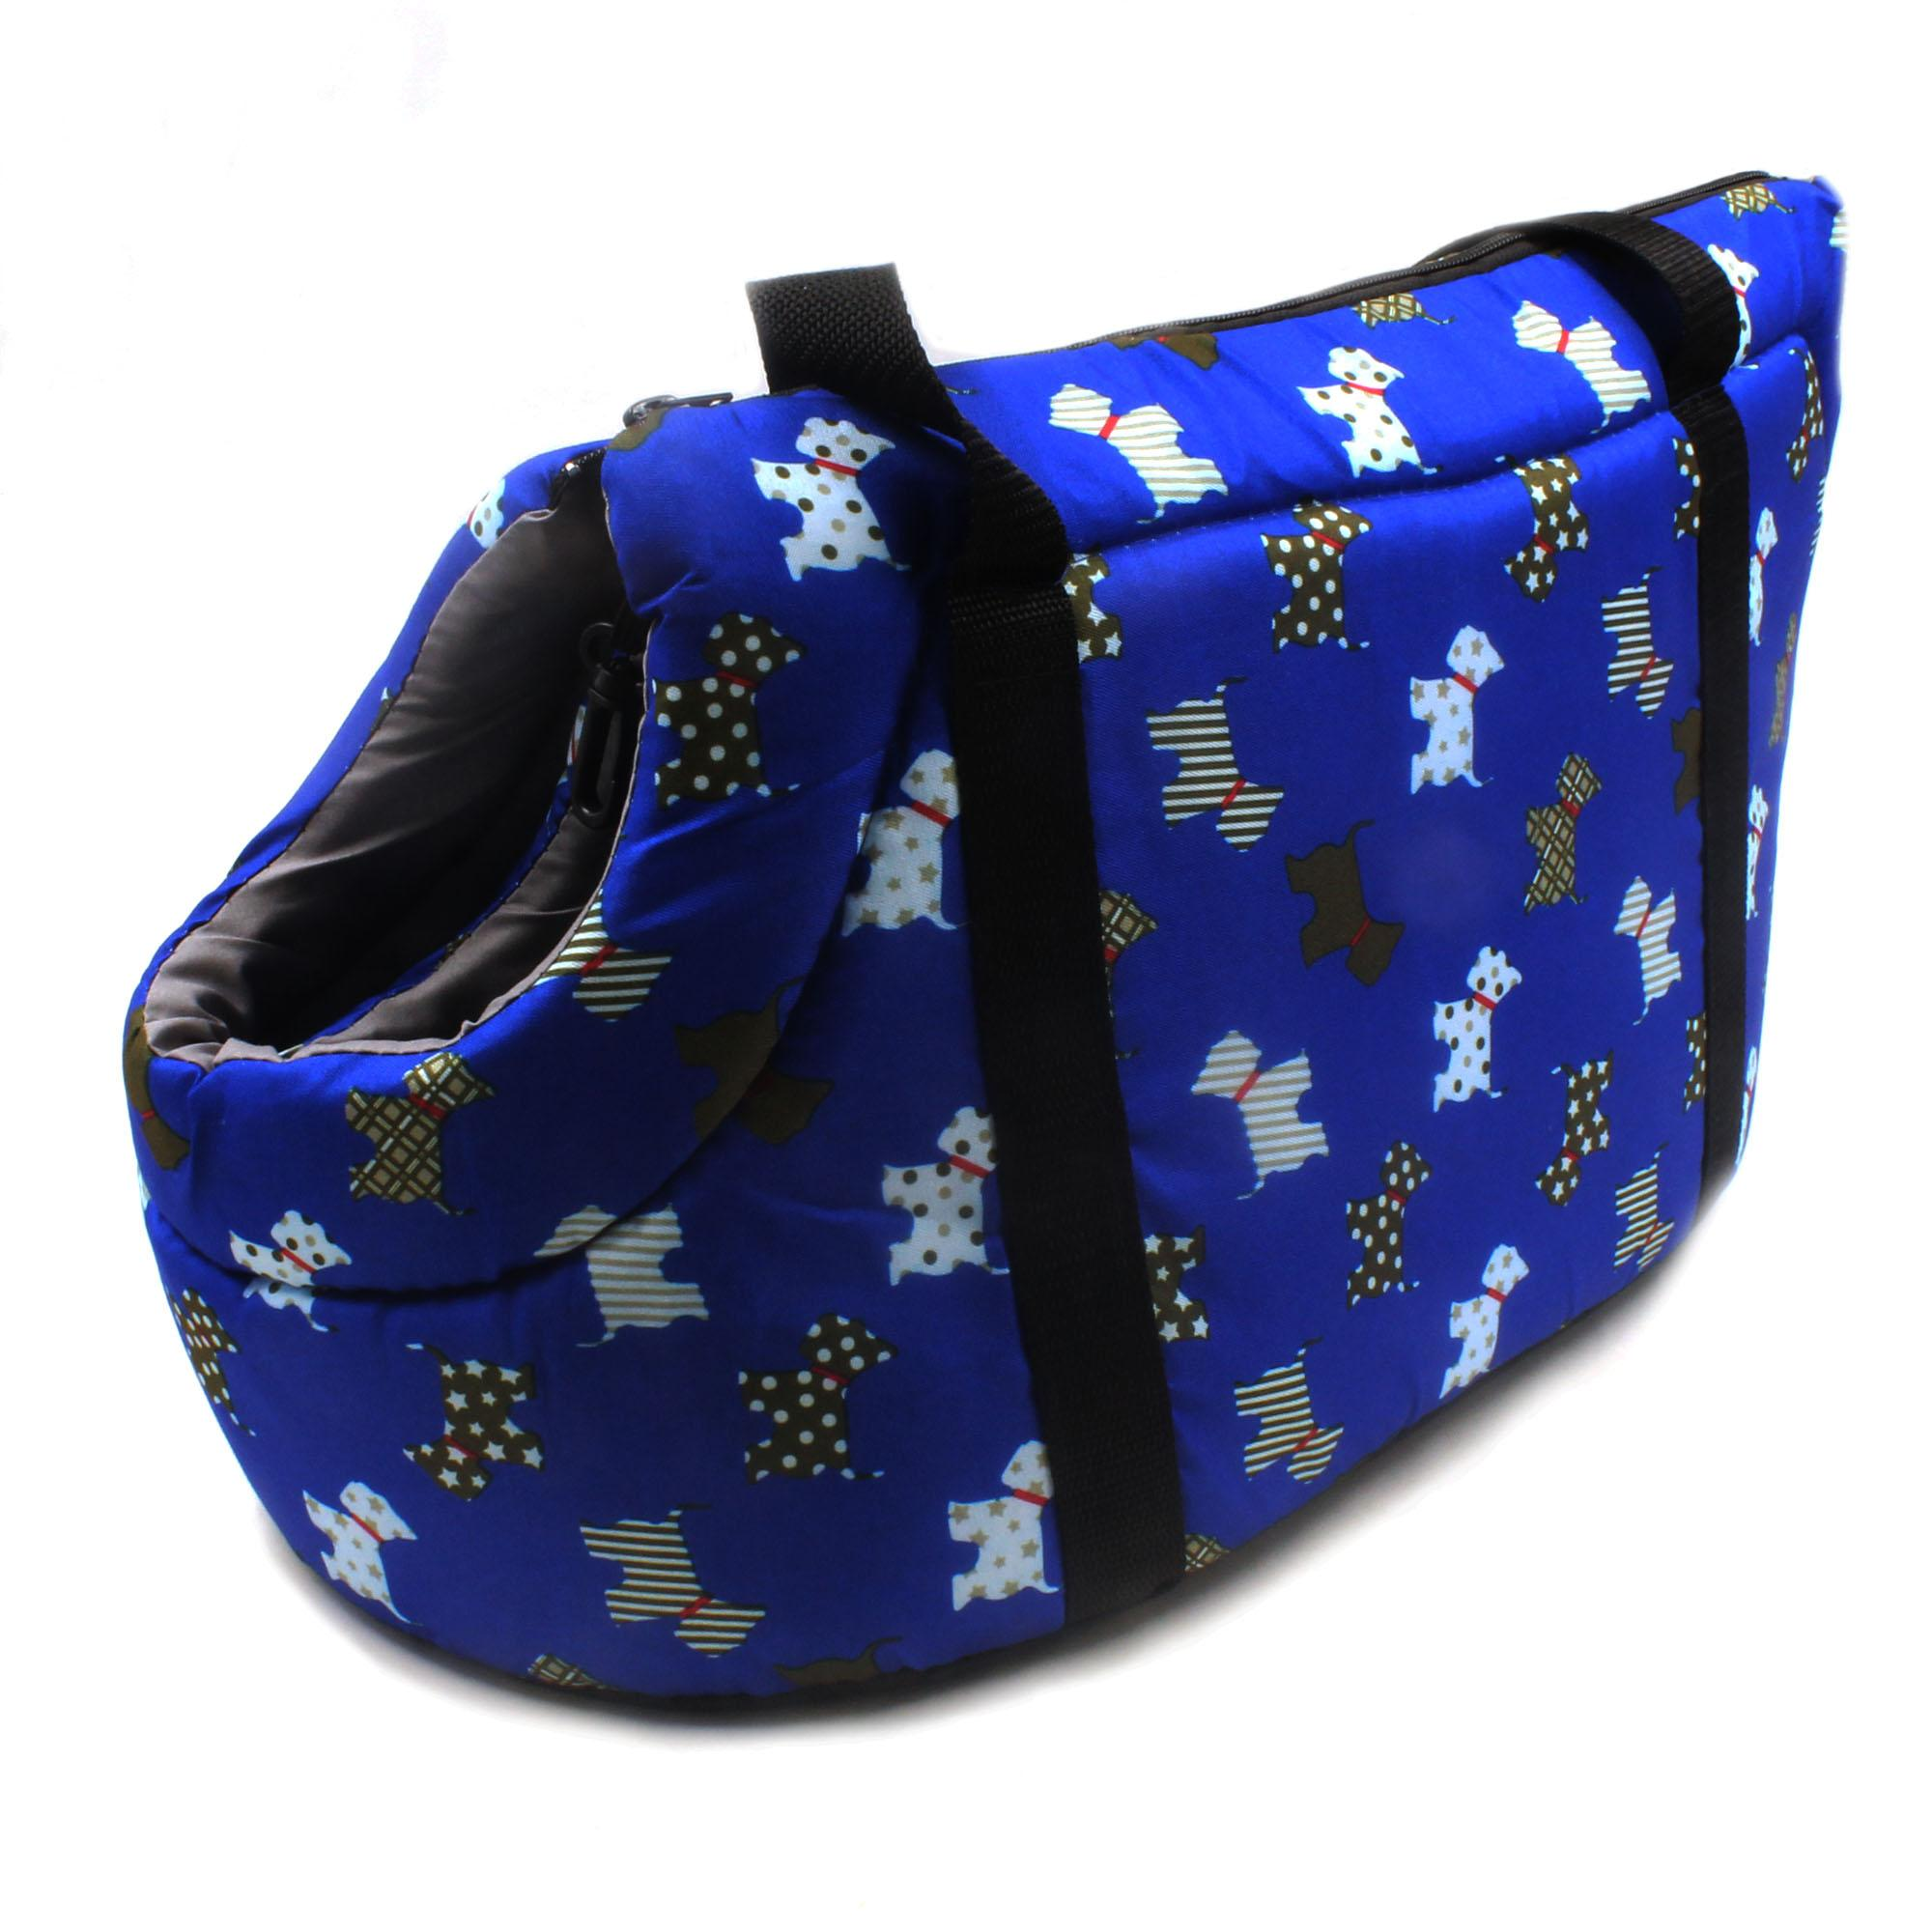 55302b37482 Digisoria Nunbell Pet Dog Travel Carrier Dog Pattern Small (Dark Blue)